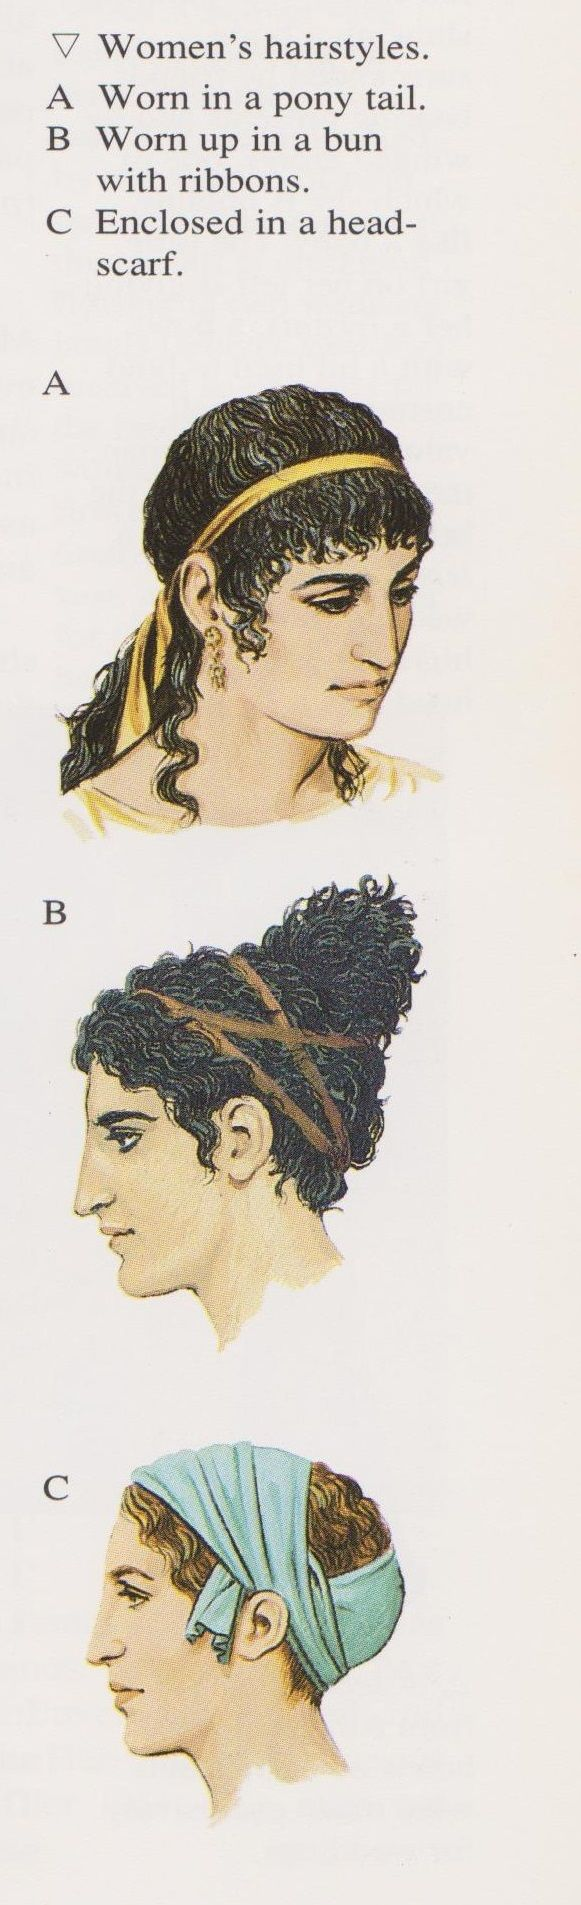 Ancient Athenian Women's Hairstyles (Peter Connolly/Greece/user: Aethon)